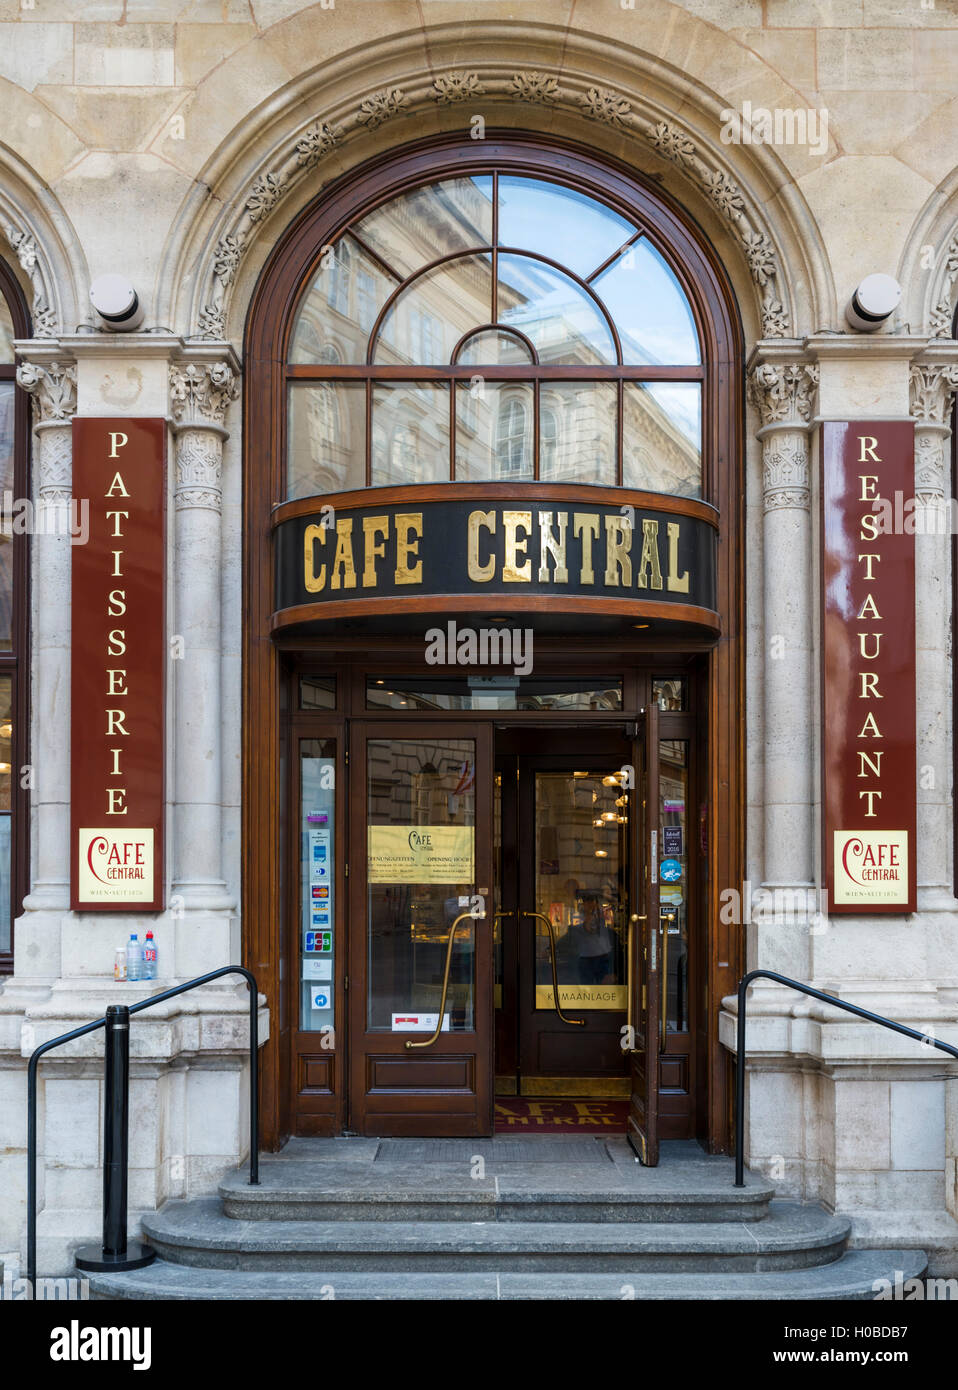 The famous Cafe Central on Herrengasse in the Innere Stadt, Vienna, Austria - Stock Image